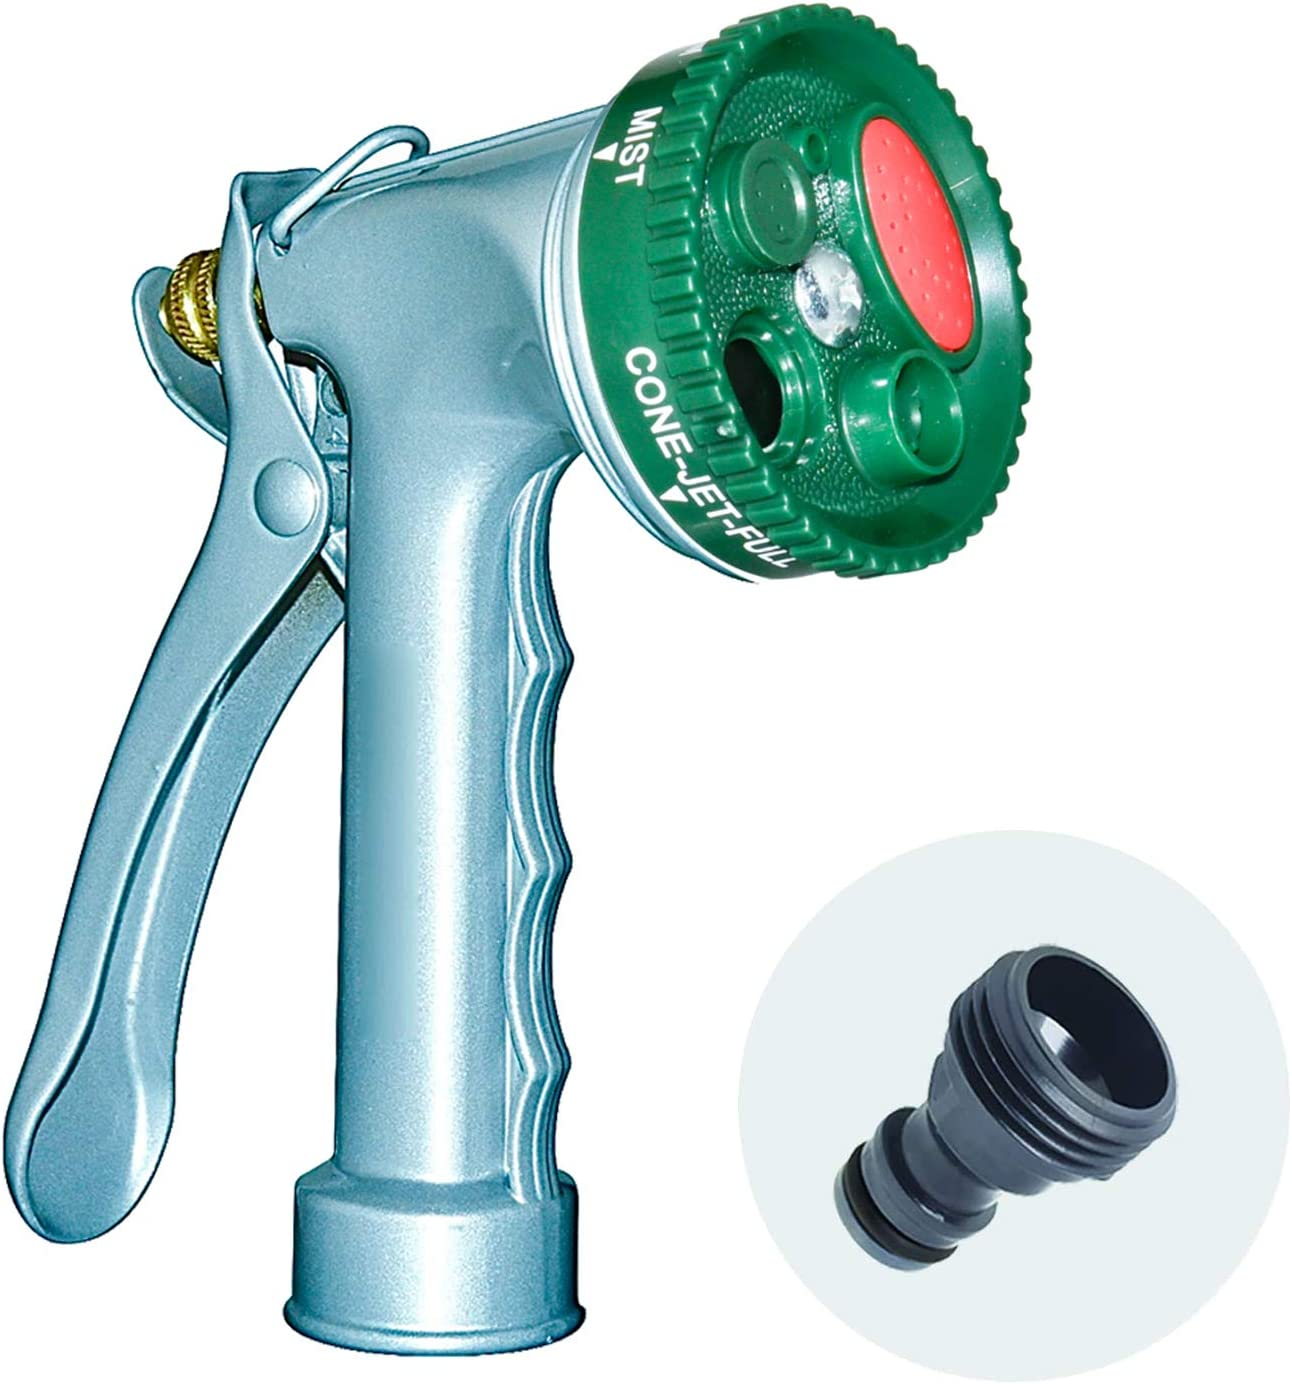 GUDWING Garden Hose Nozzle, Water Hose Nozzle Spray Nozzle, Metal Garden Hose Nozzle Perfect for Watering Plants, Washing Cars and Showering Dogs & Pets (Metal, Classic Metal DIal Nozzle)